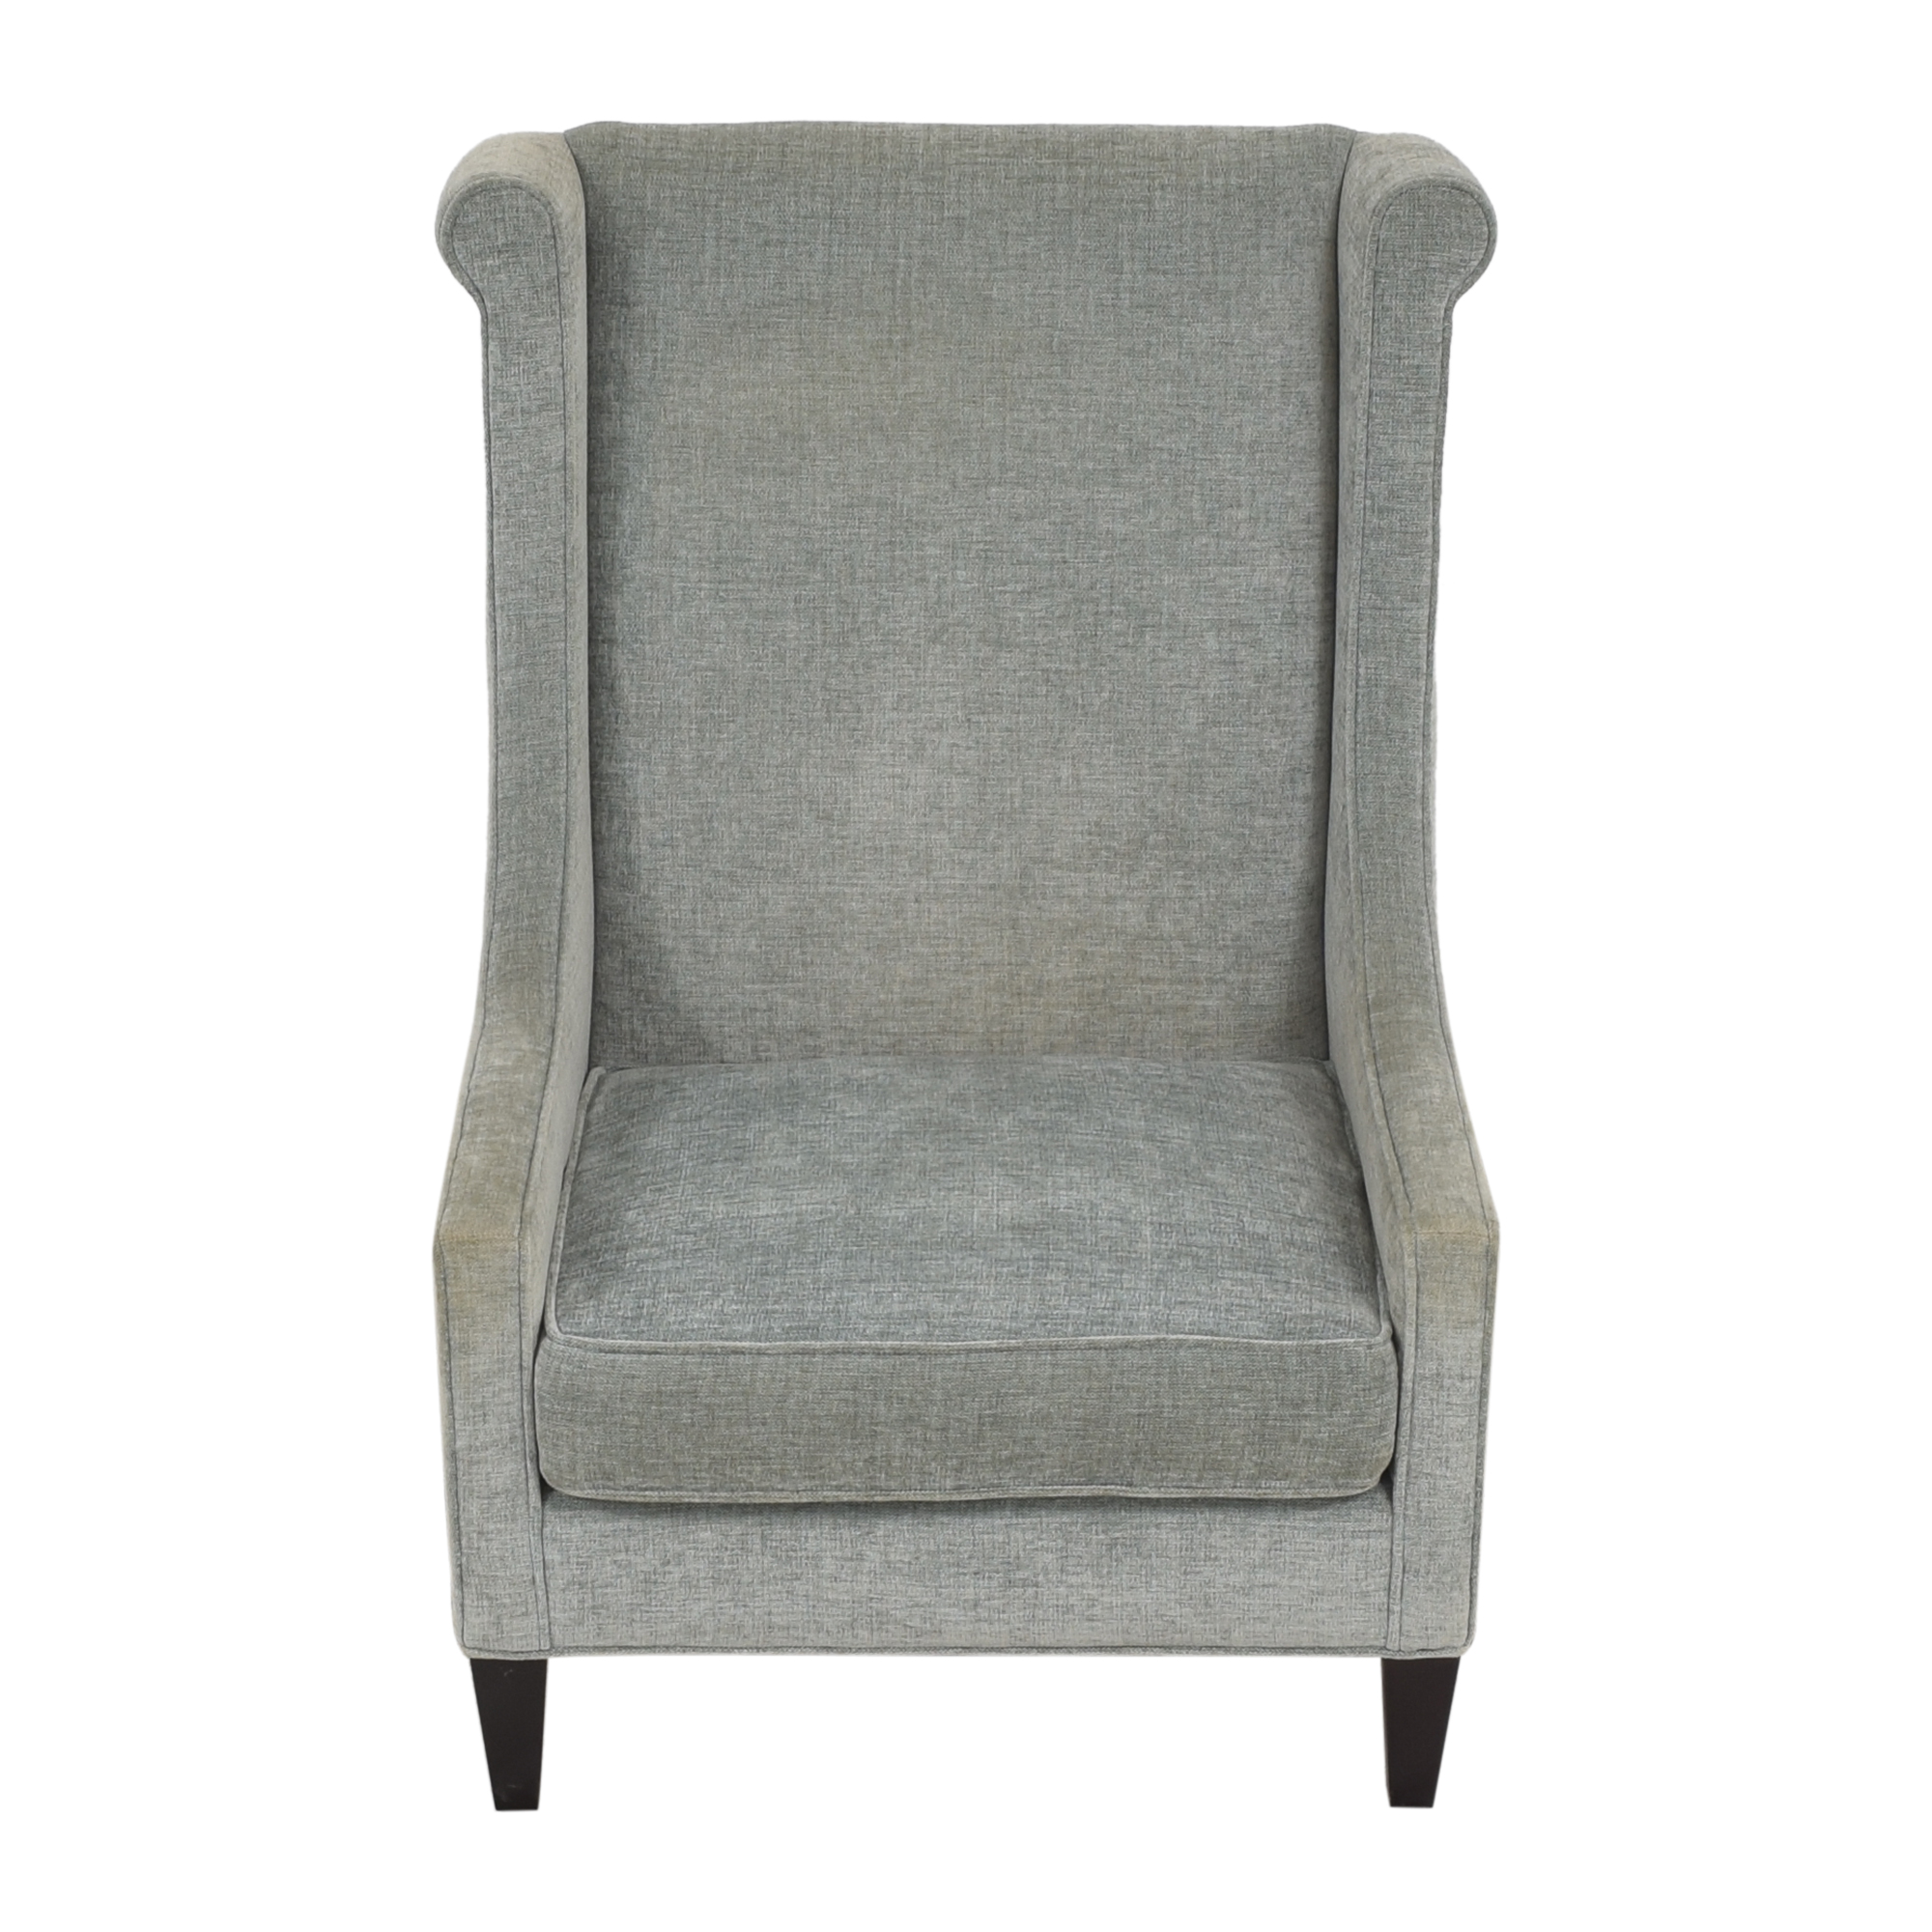 Custom Upholstered Accent Chair second hand